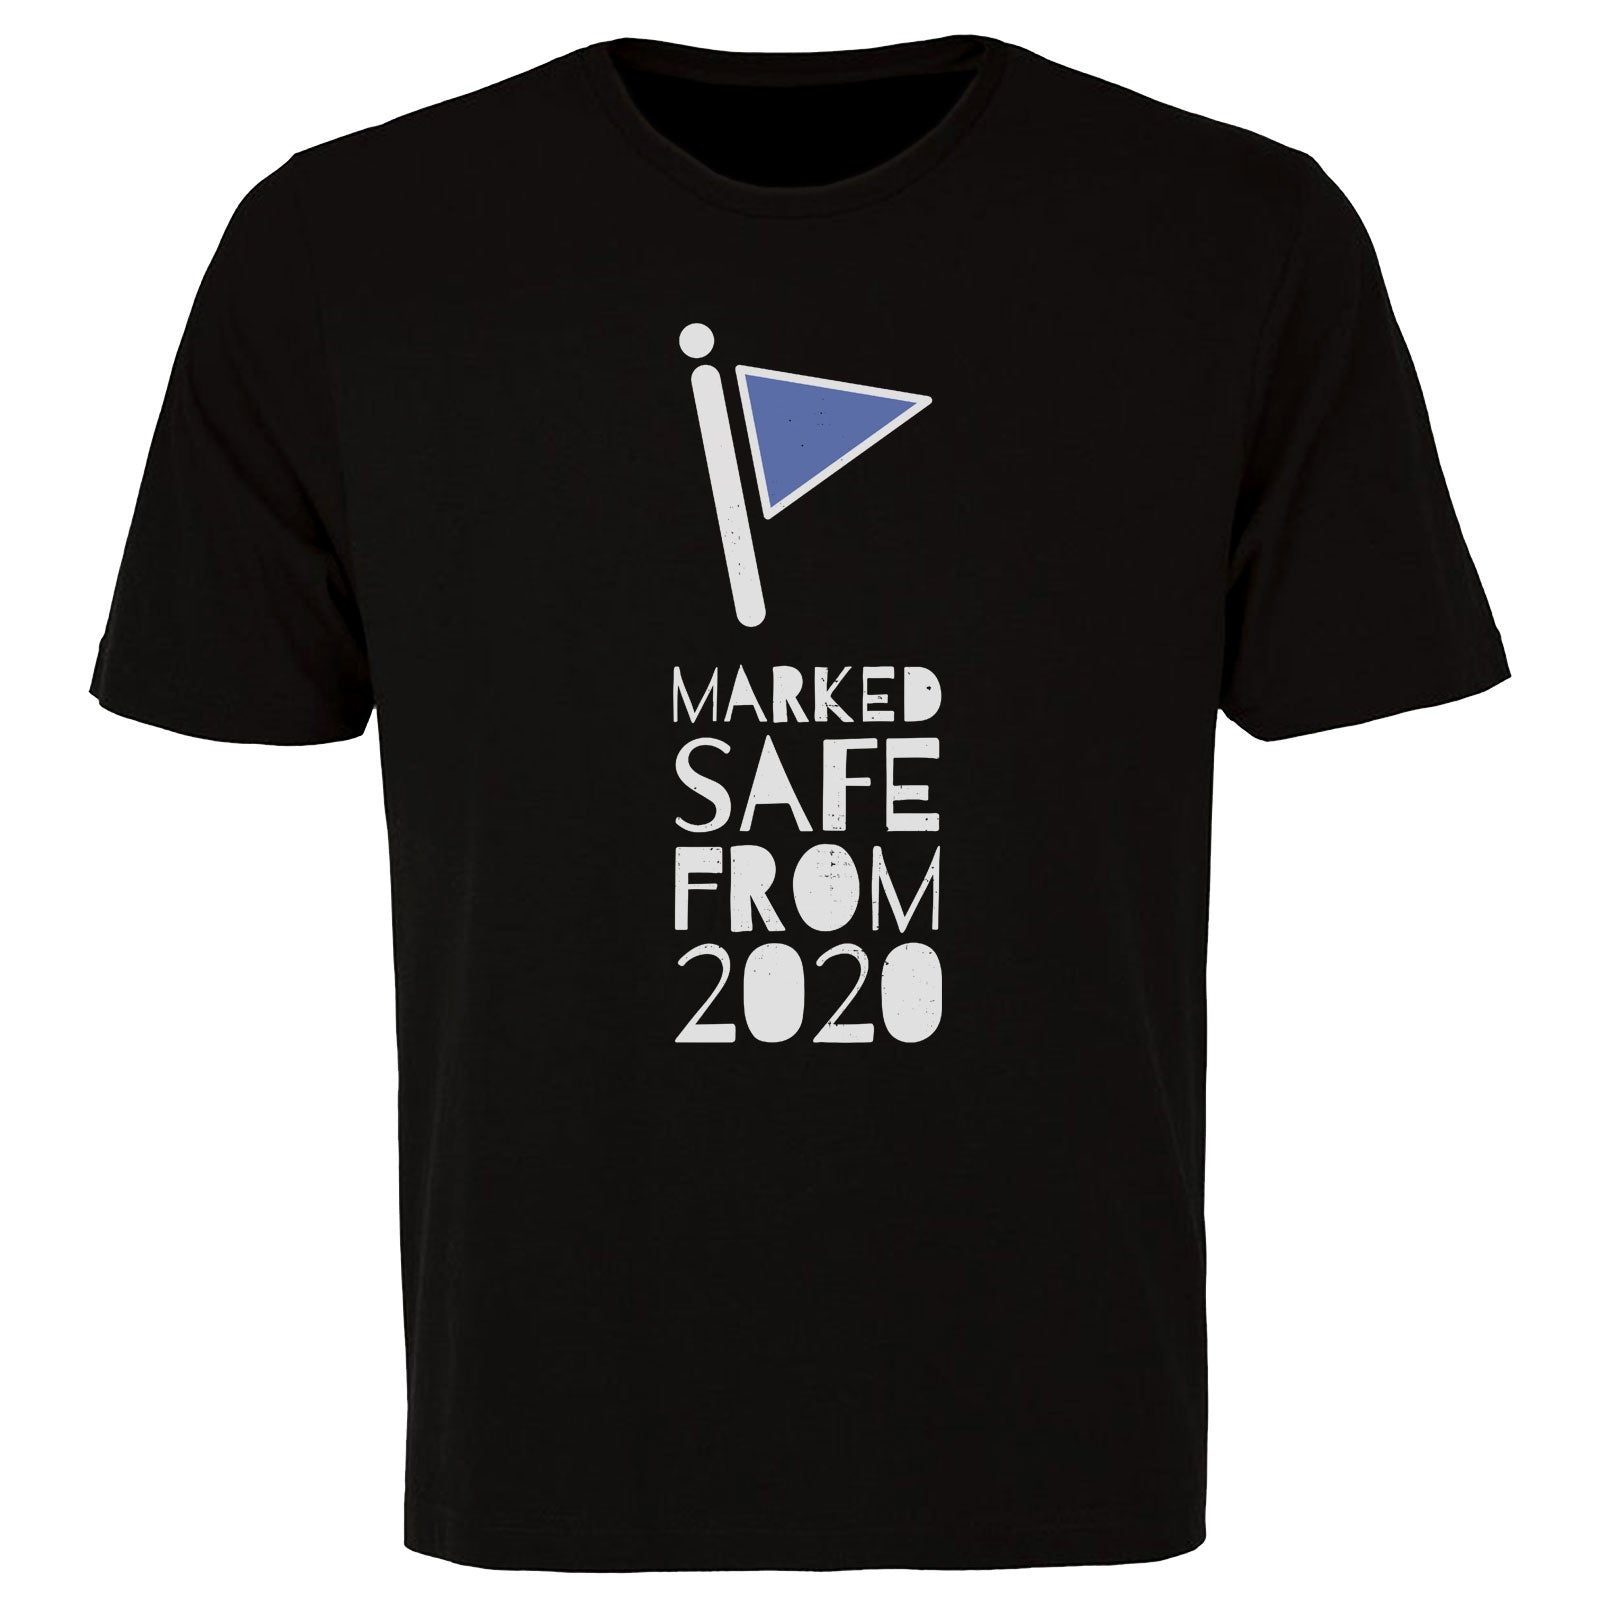 Marked Safe From 2020 (Men's)